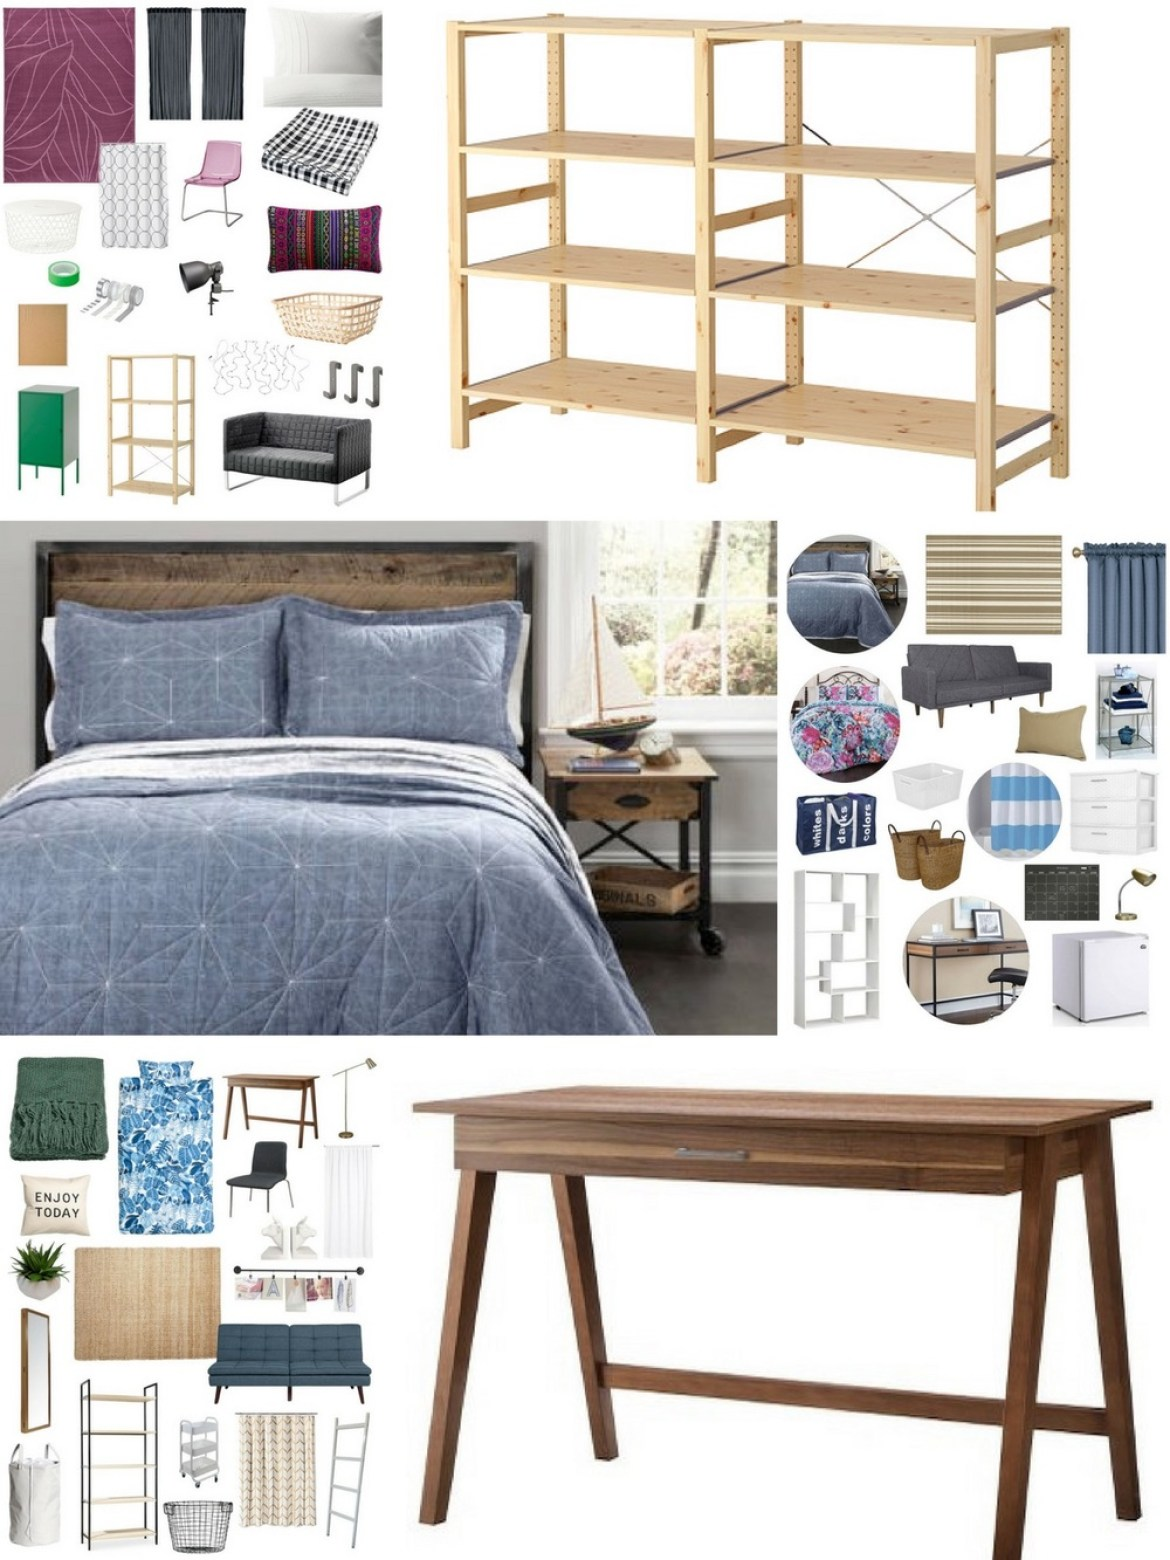 Shopping Guide: Three Dorm room Designs to Steal This Semester